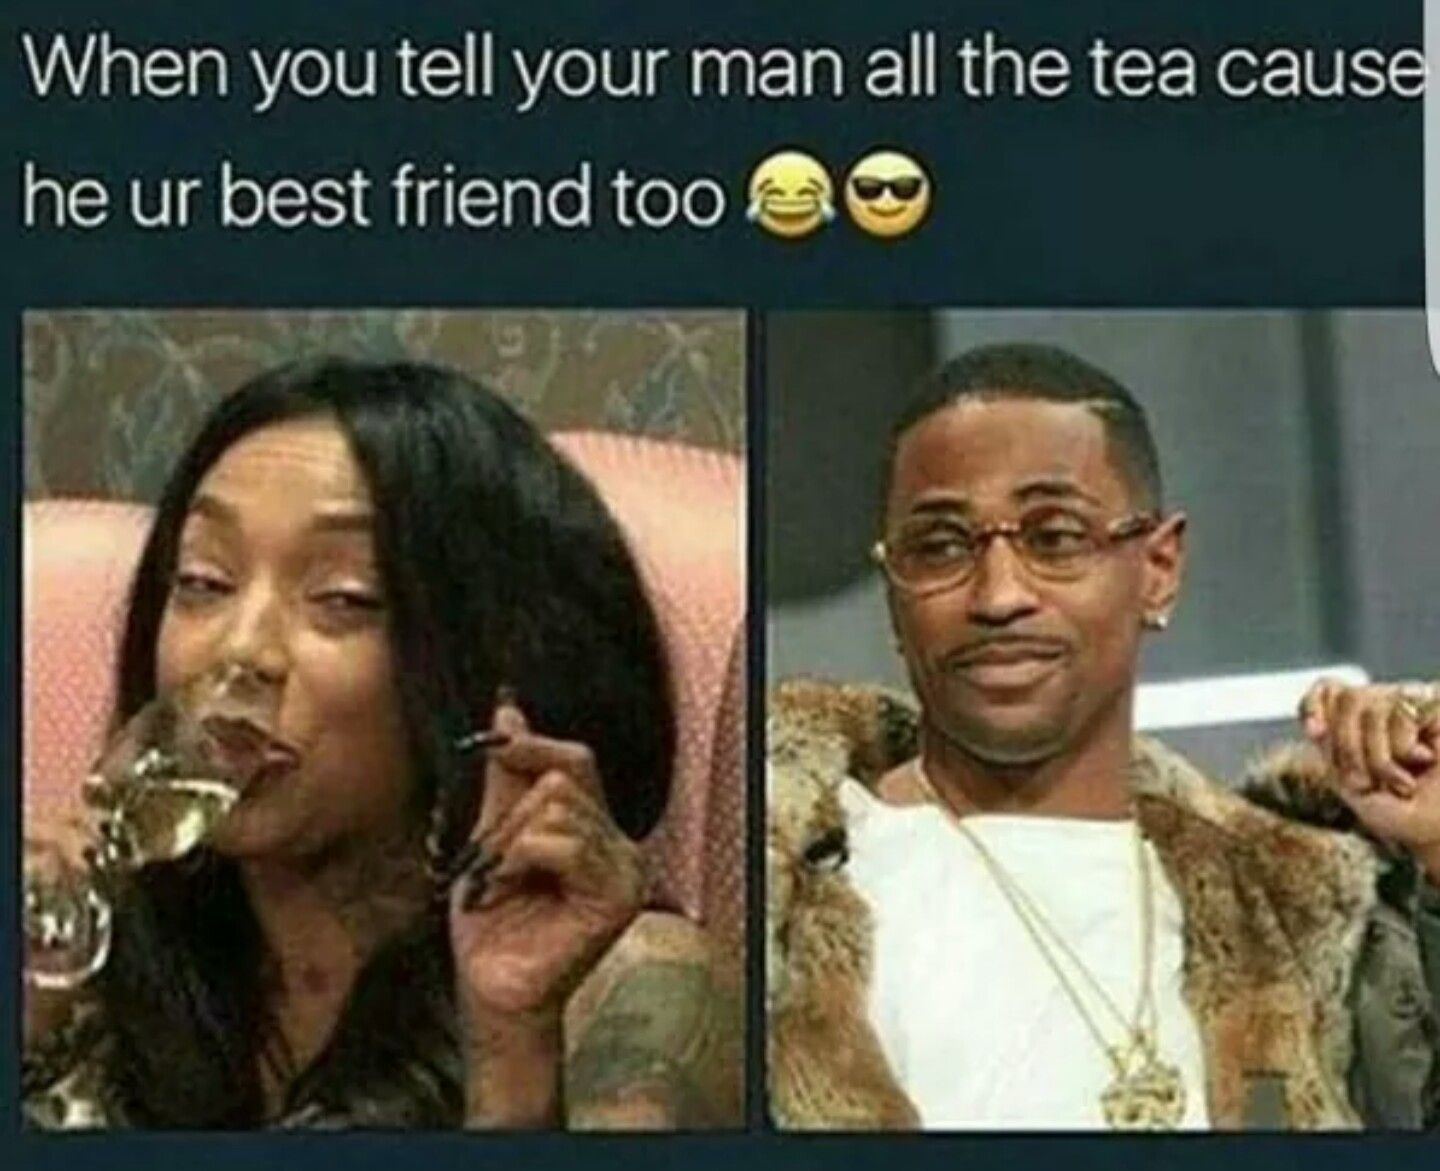 When You Tell Your Man All The Tea Cause He Your Best Friend Too Marriage Memes Funny Relationship Memes Relationship Memes